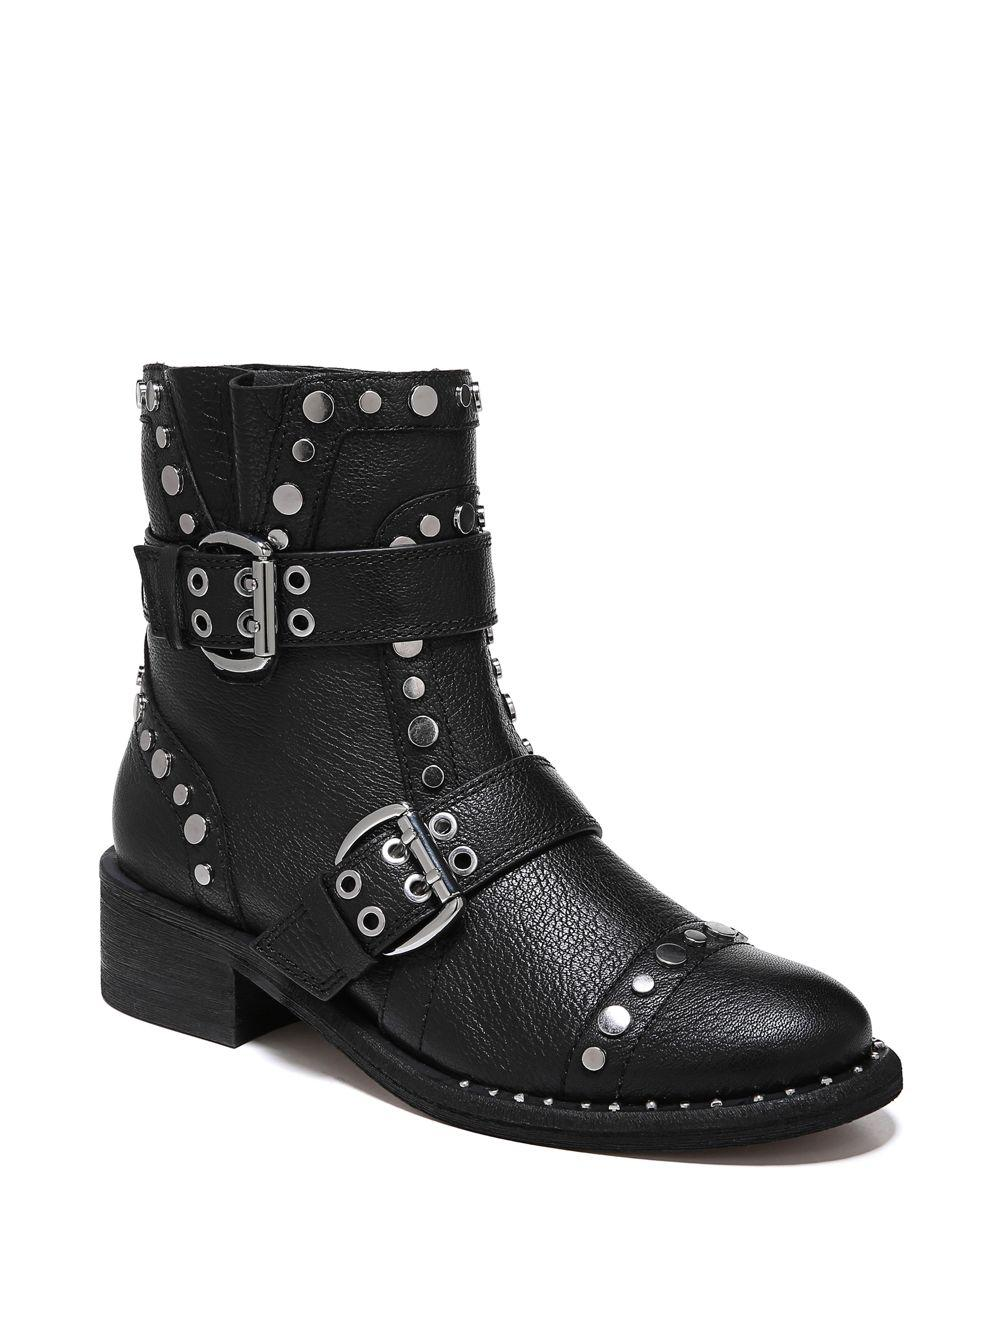 36959c3d3 Sam Edelman Drea Studded Leather Ankle Boots in Black - Save 68% - Lyst